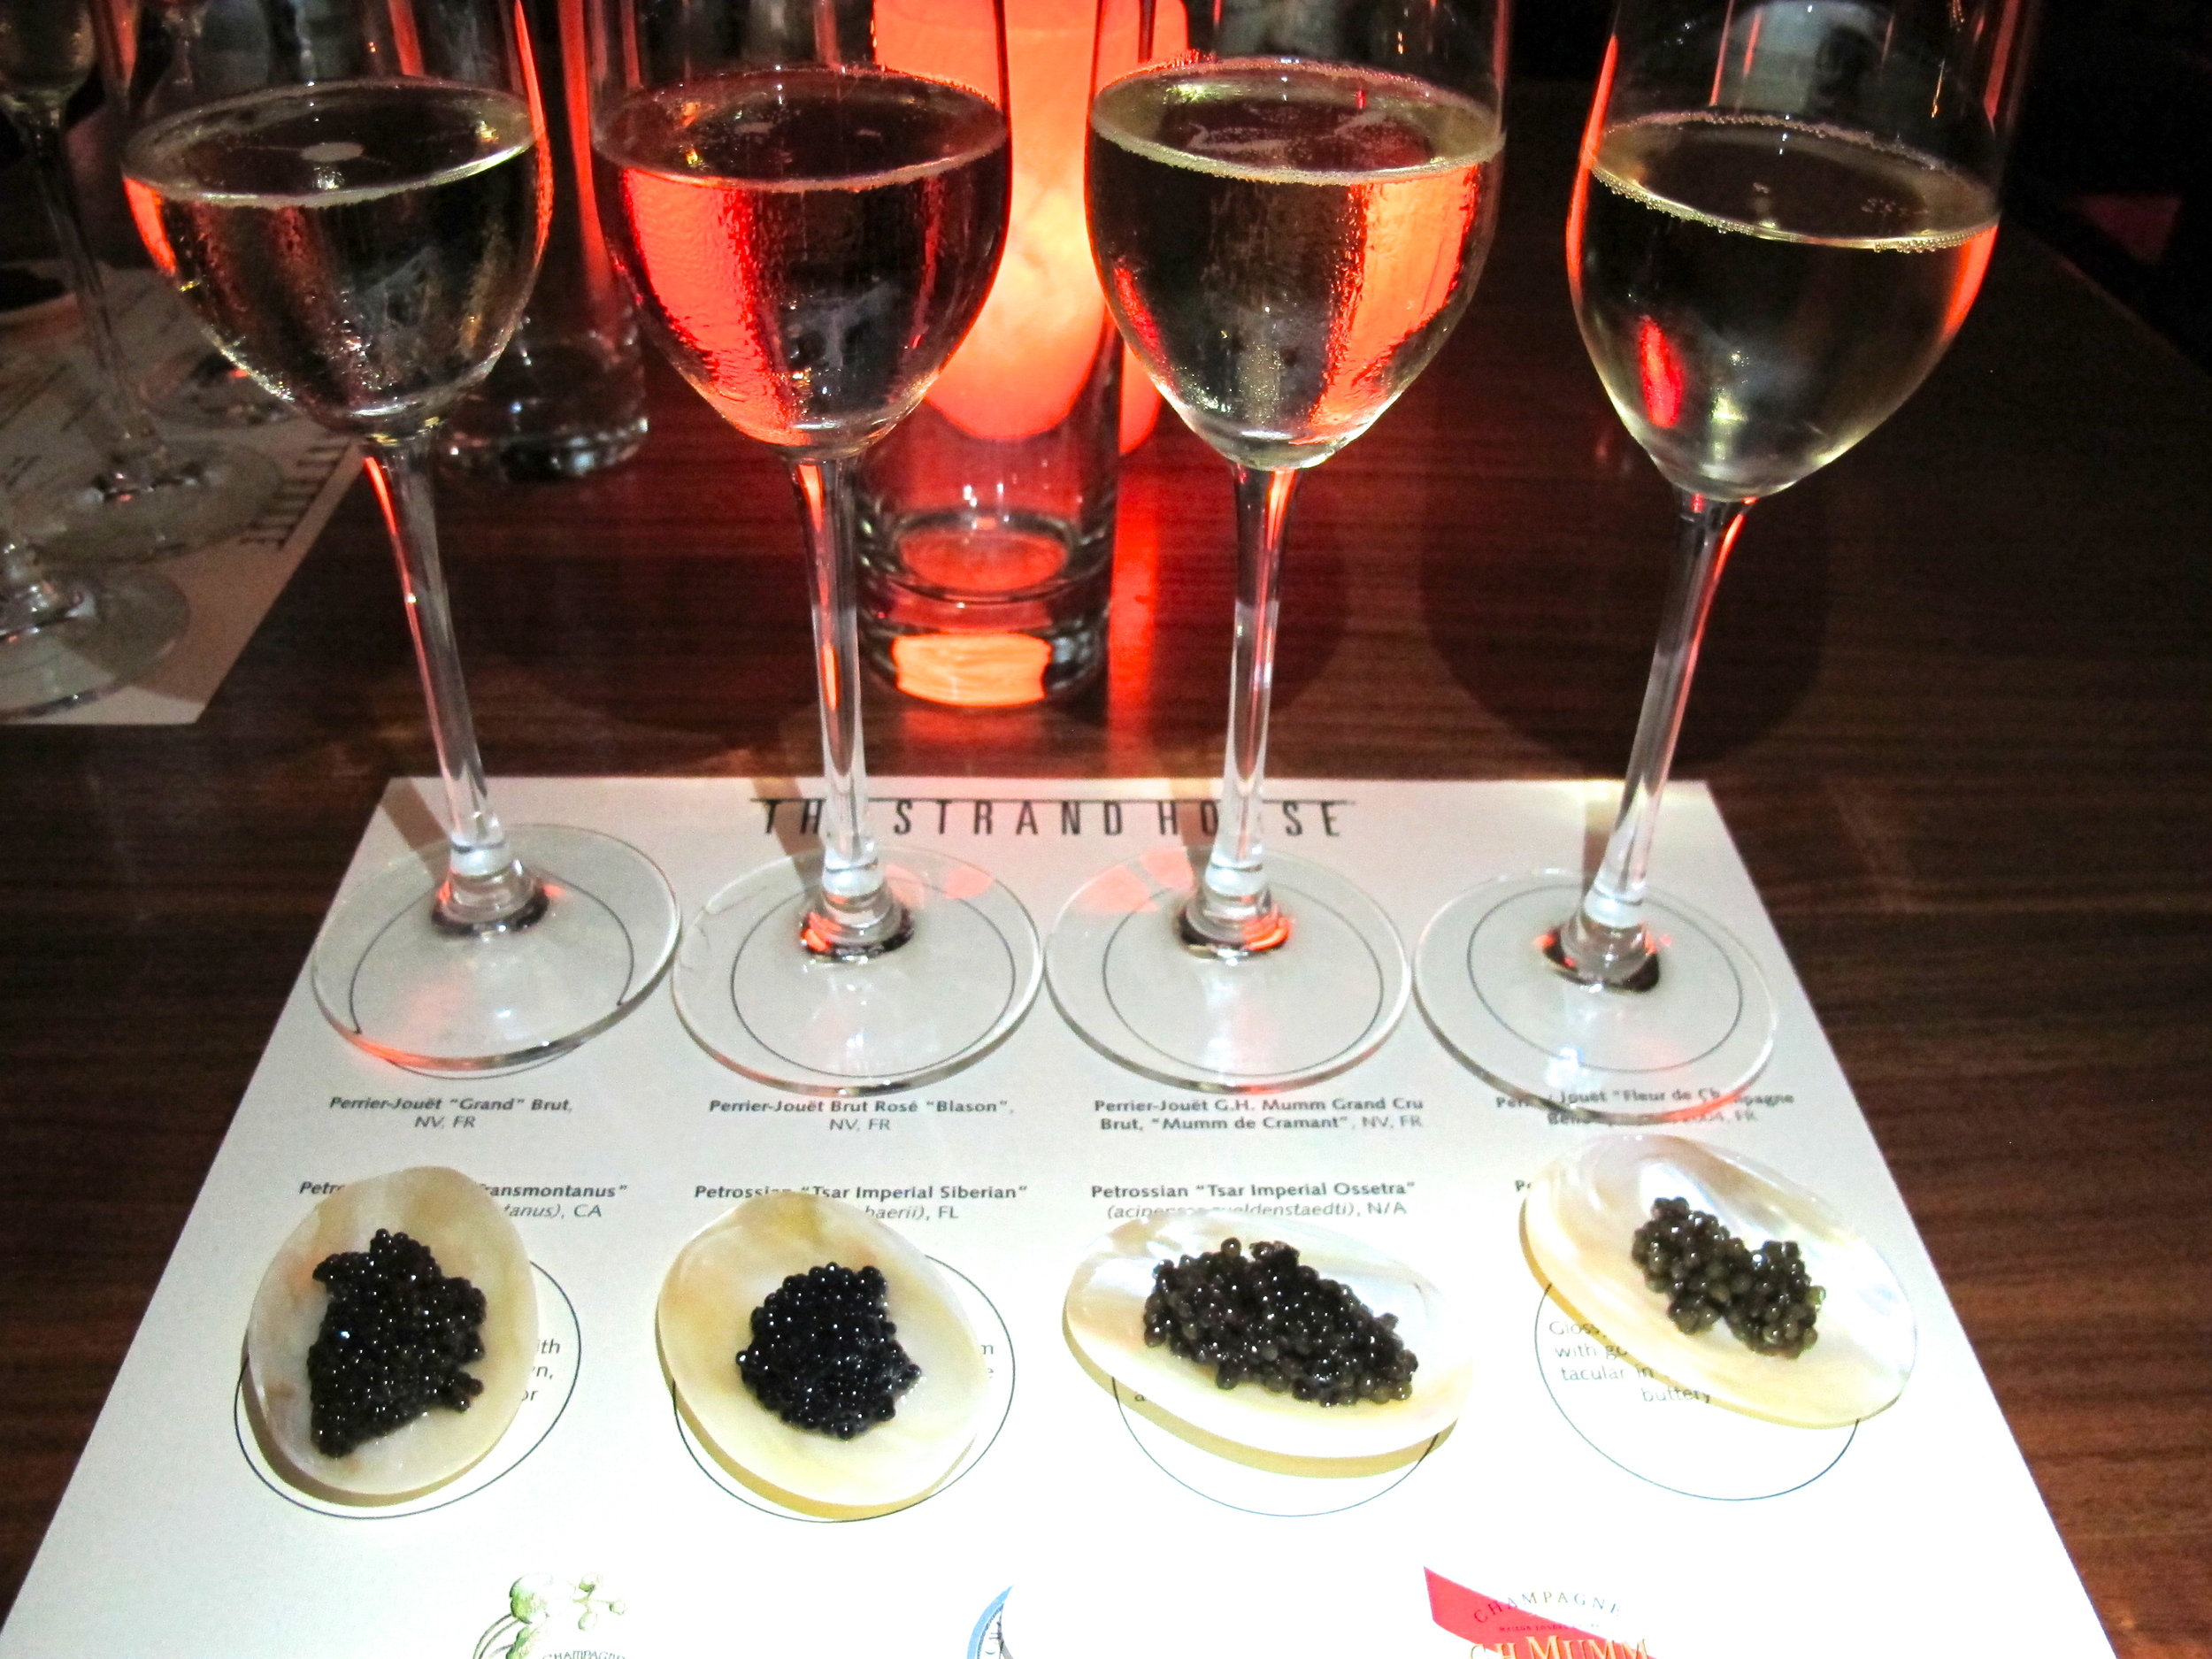 Petrossian cavair tasting with Perrier Jouet champagne